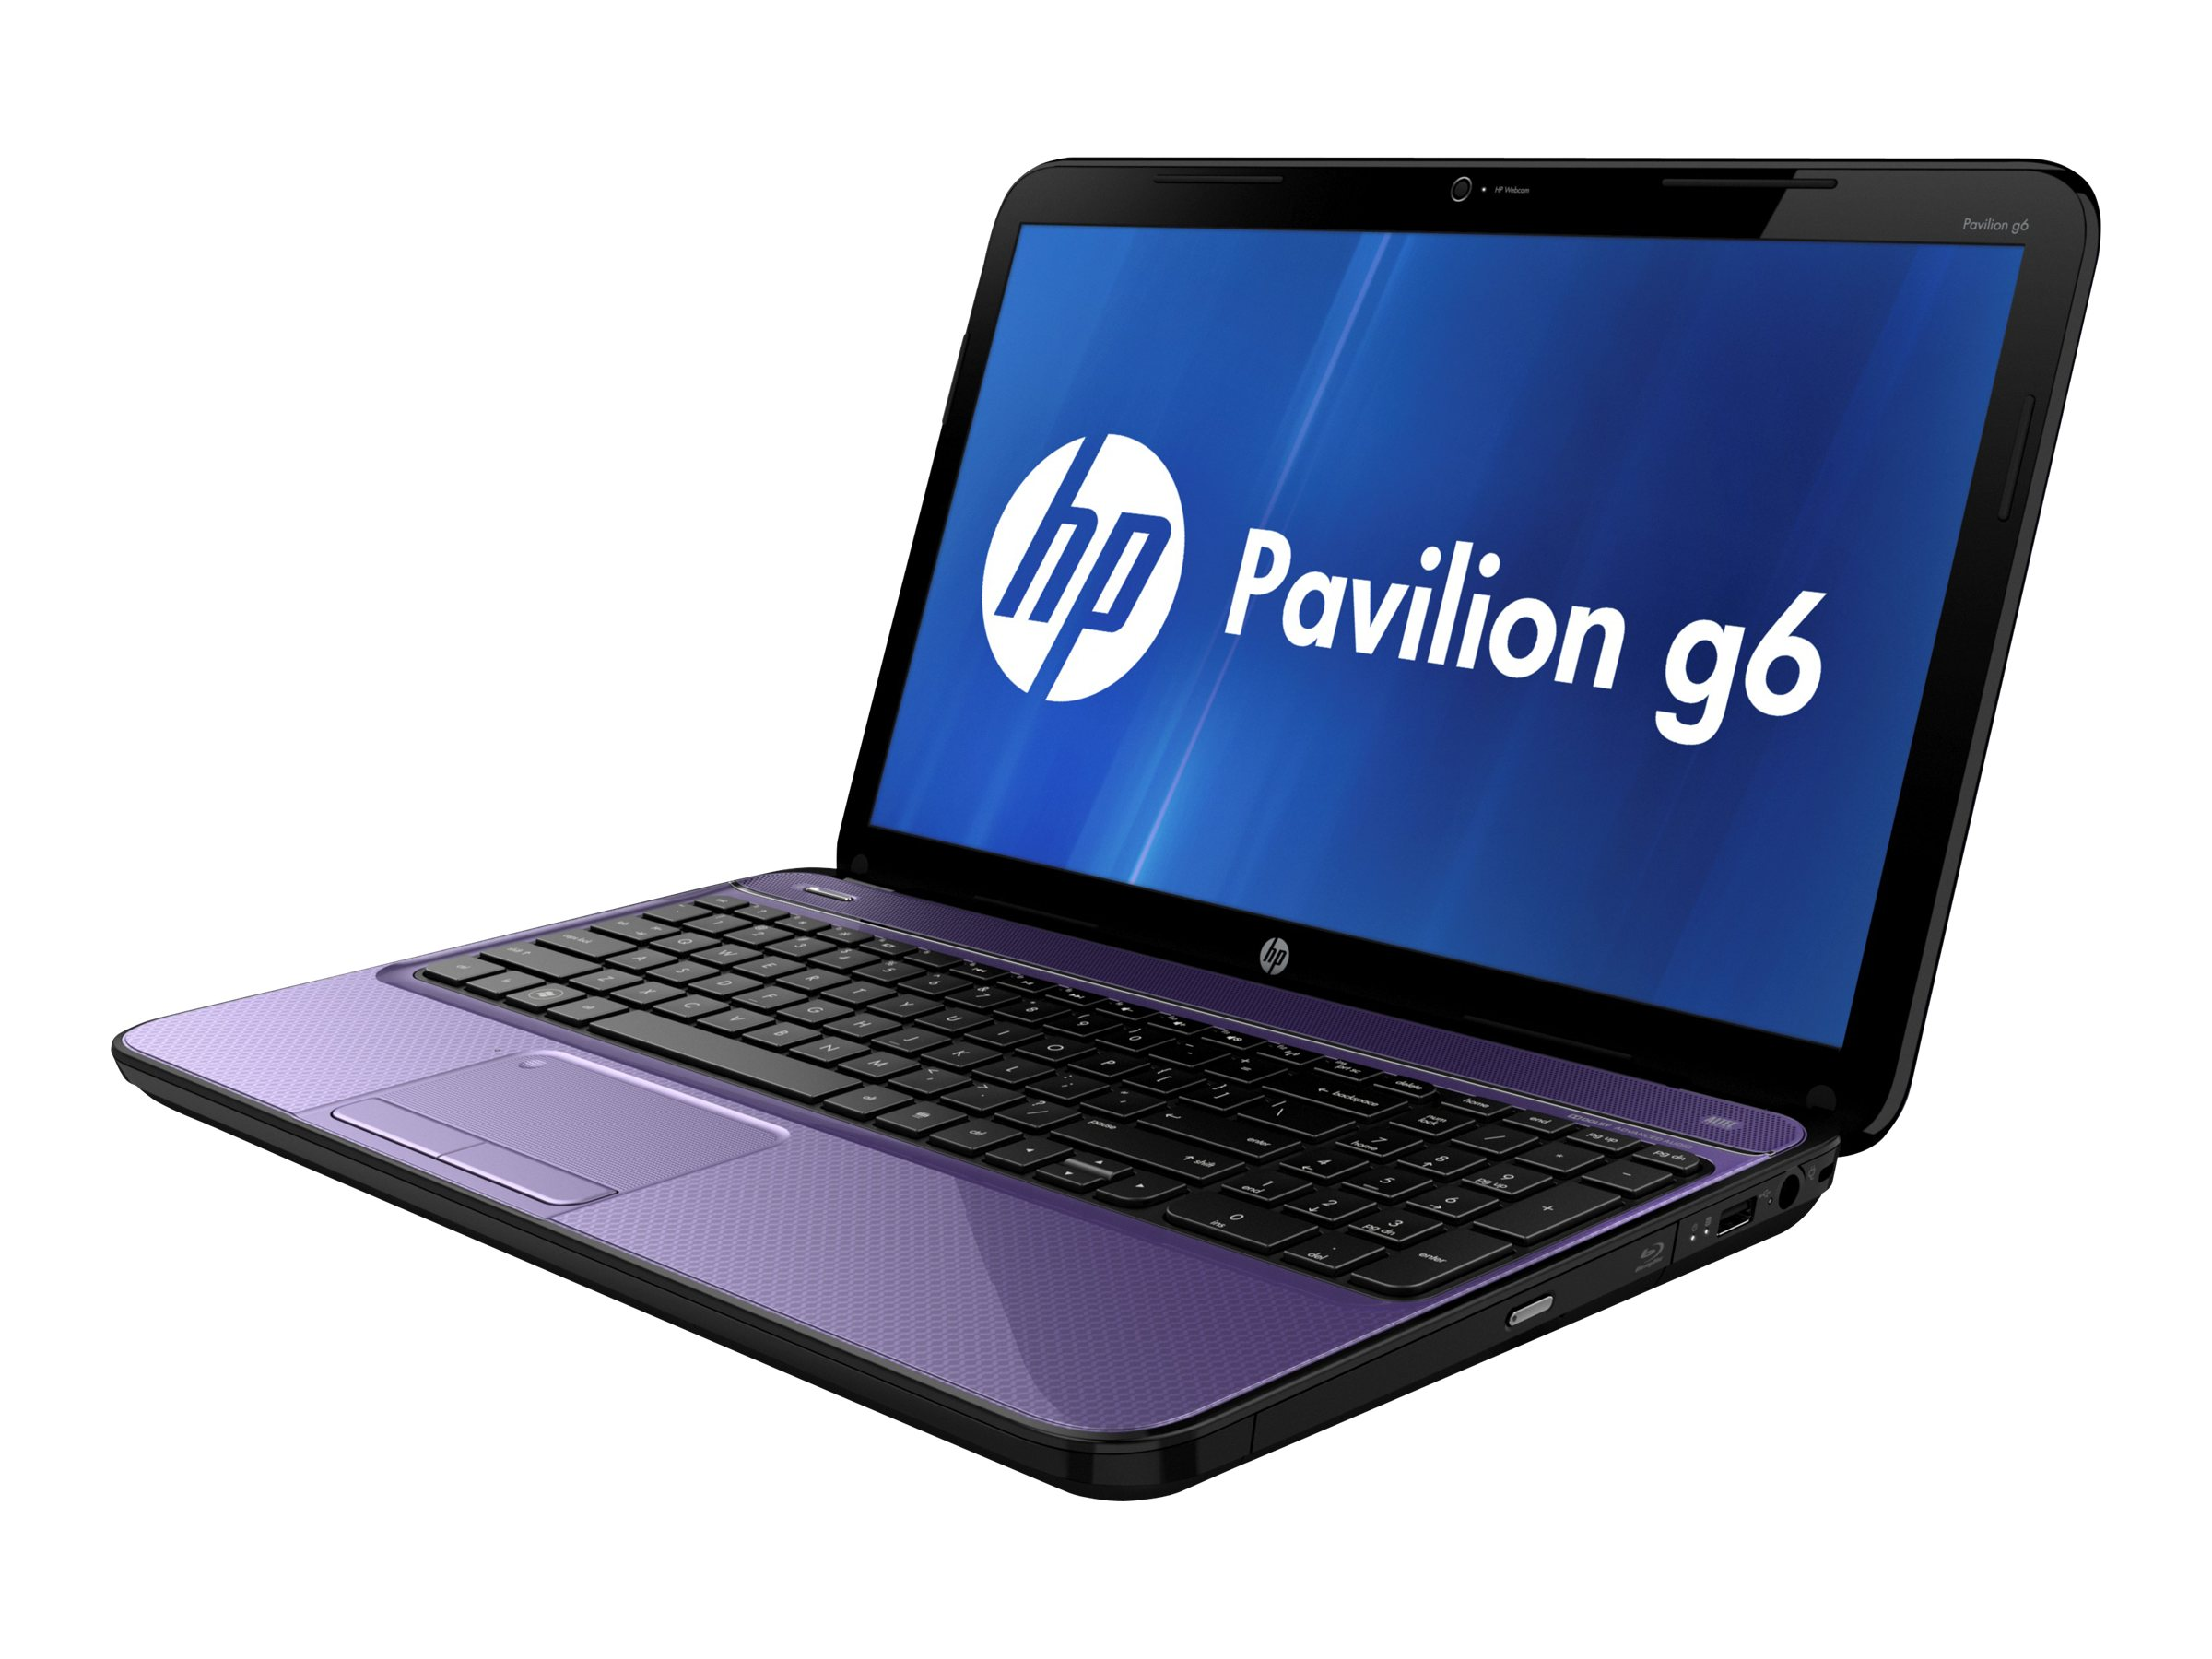 HP Pavilion Core i3-2350M 4GB 500GB 15.6 Red